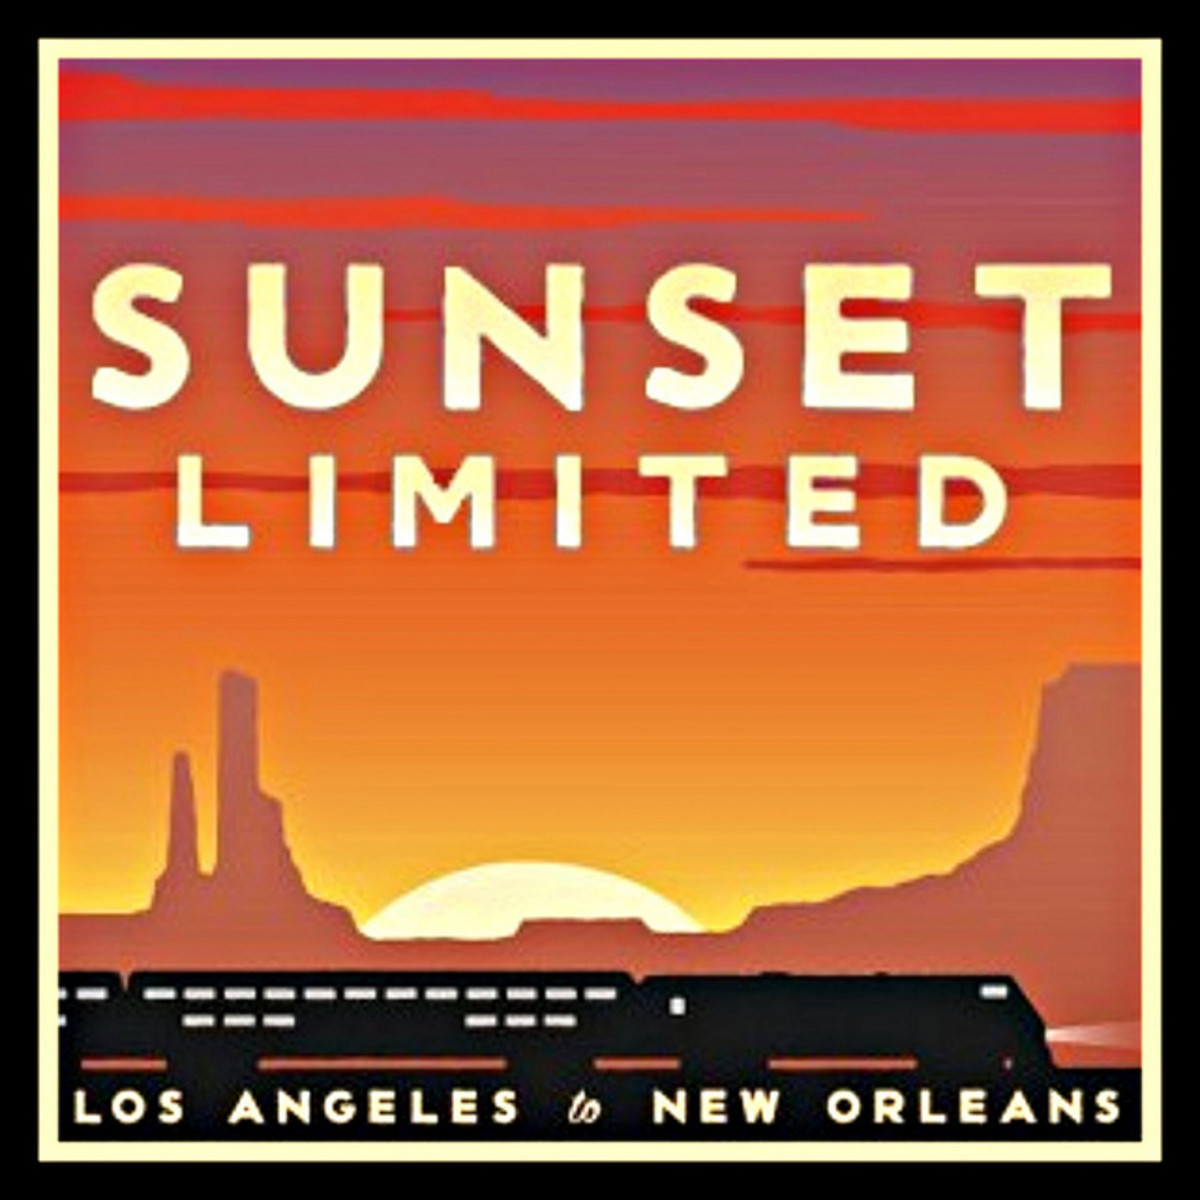 Amtrak 'sunset limited' Poster artwork Edited